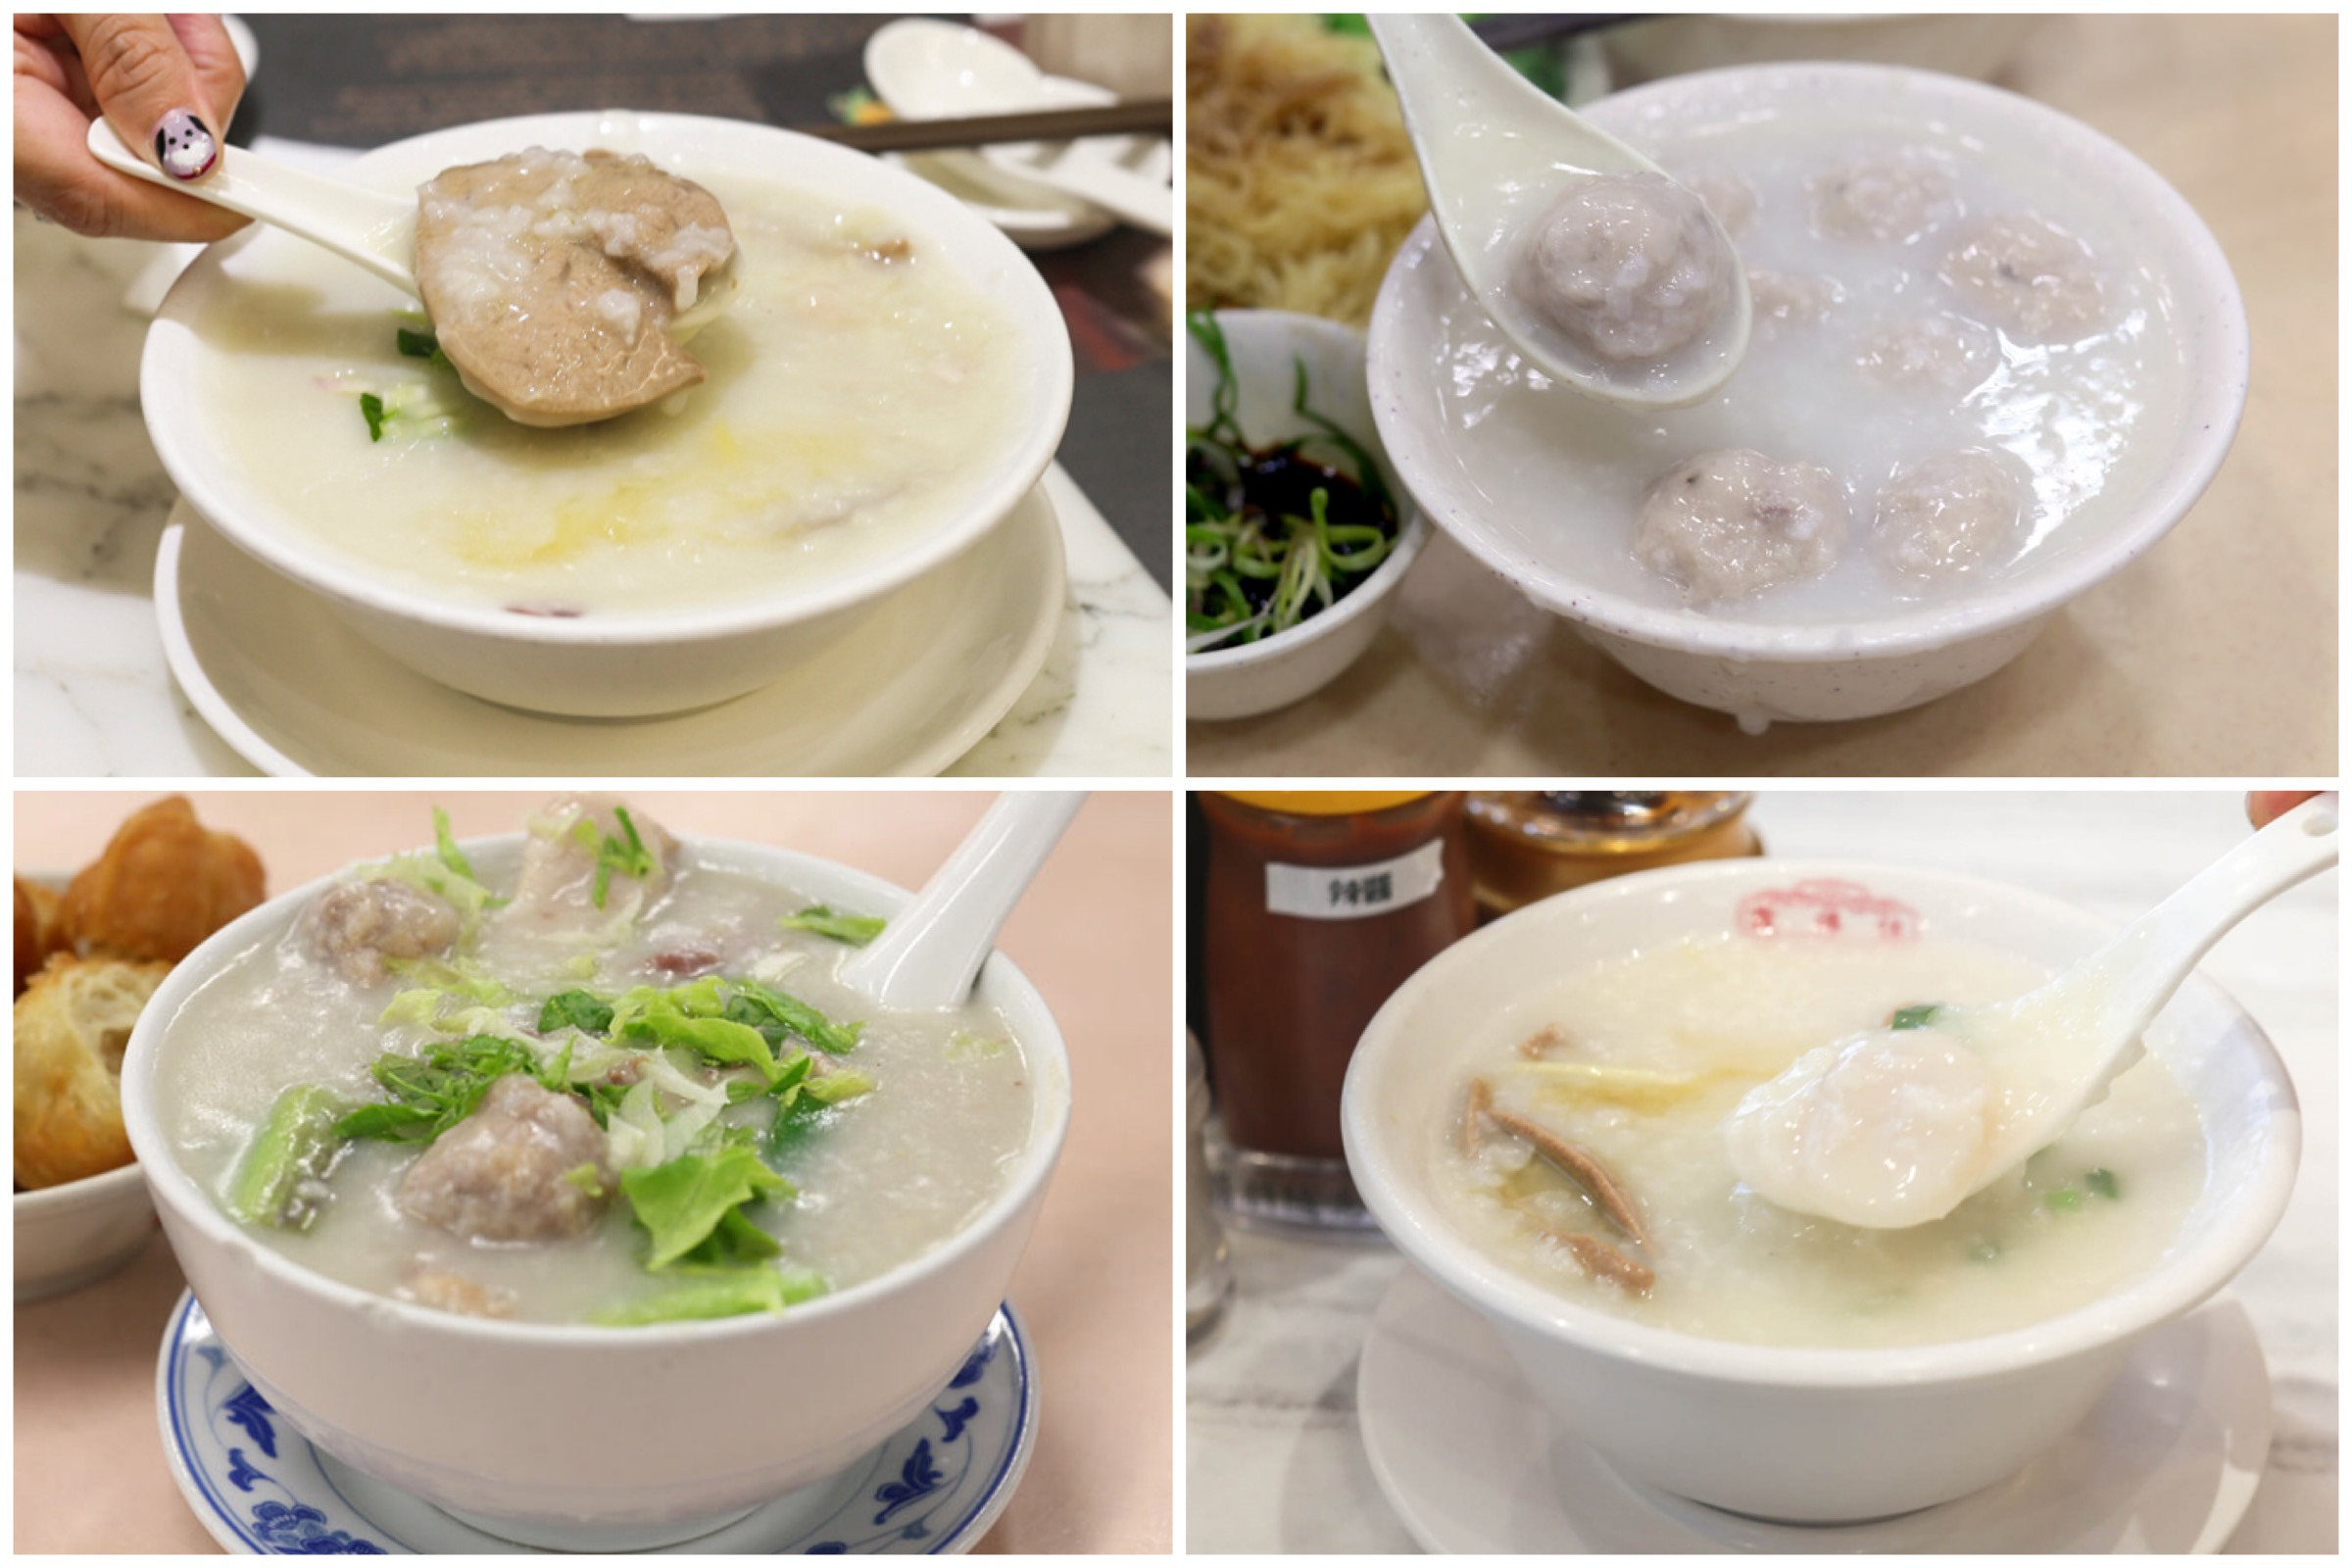 7 Best Congee In Hong Kong - Bowls Of Comfort From Sang Kee, Mui Kee To Trusty Congee King